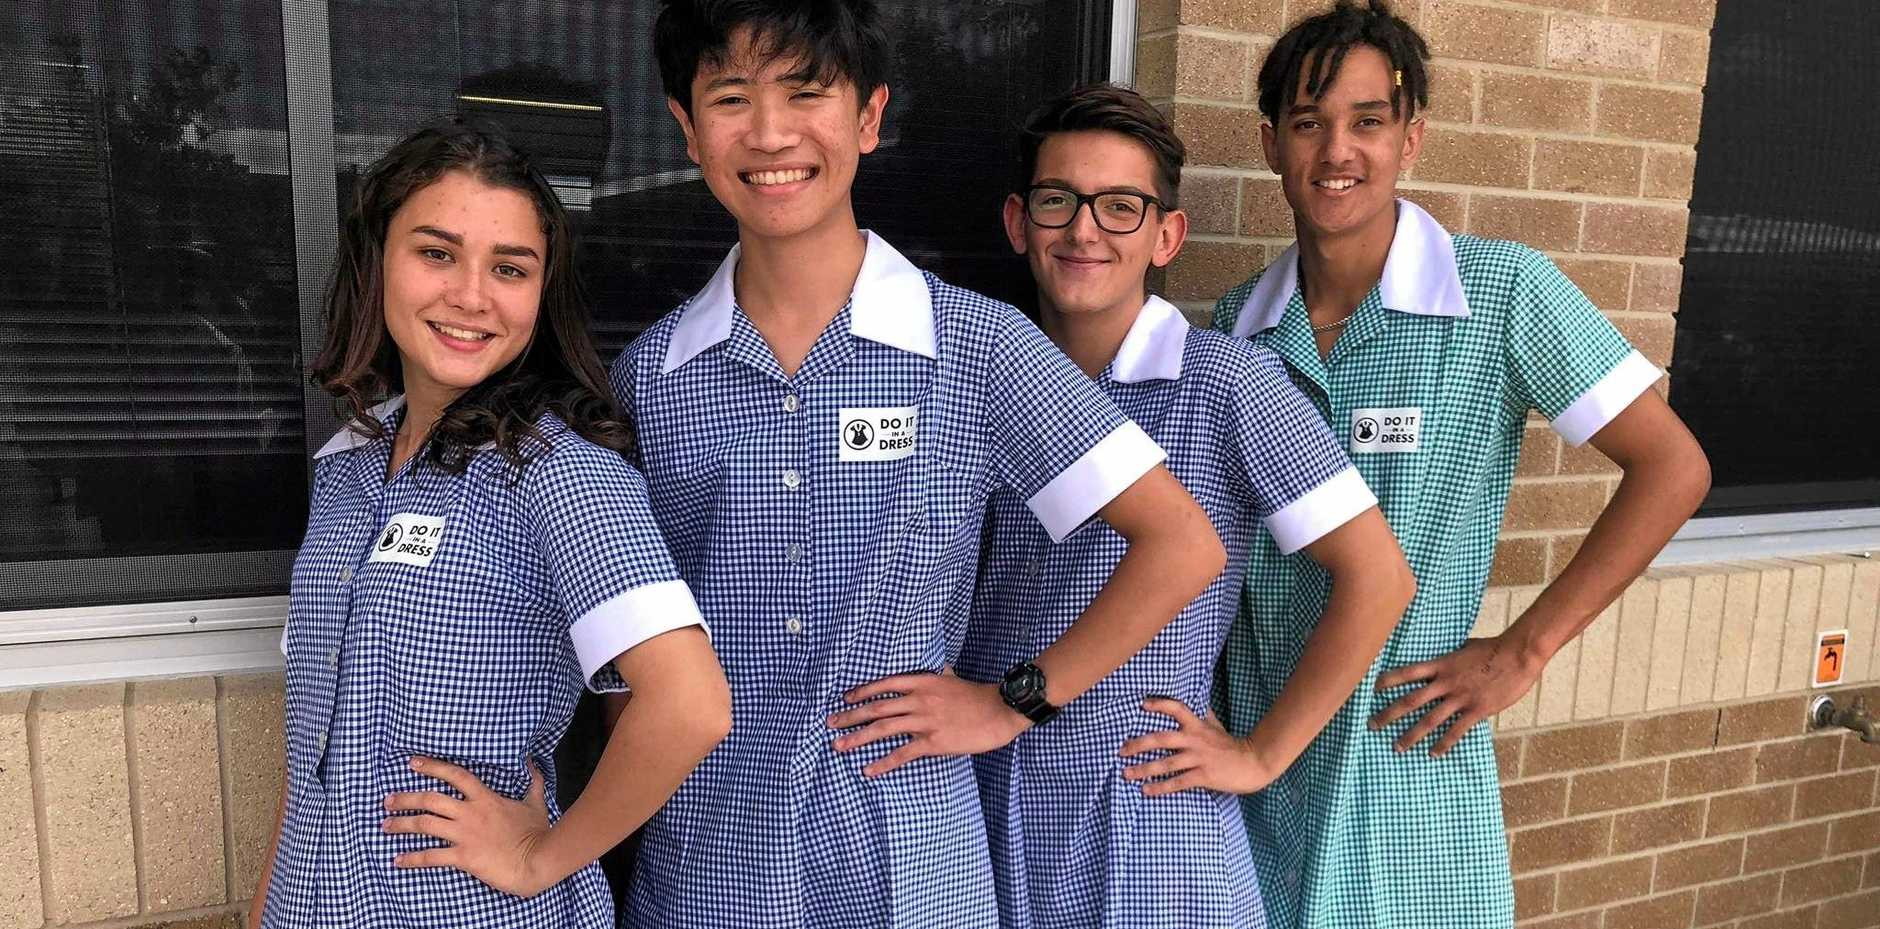 Mackay Northern Beaches SHS students Catherine Goode, Sirach Santos, Sev Sewell and Isaac Pooley.